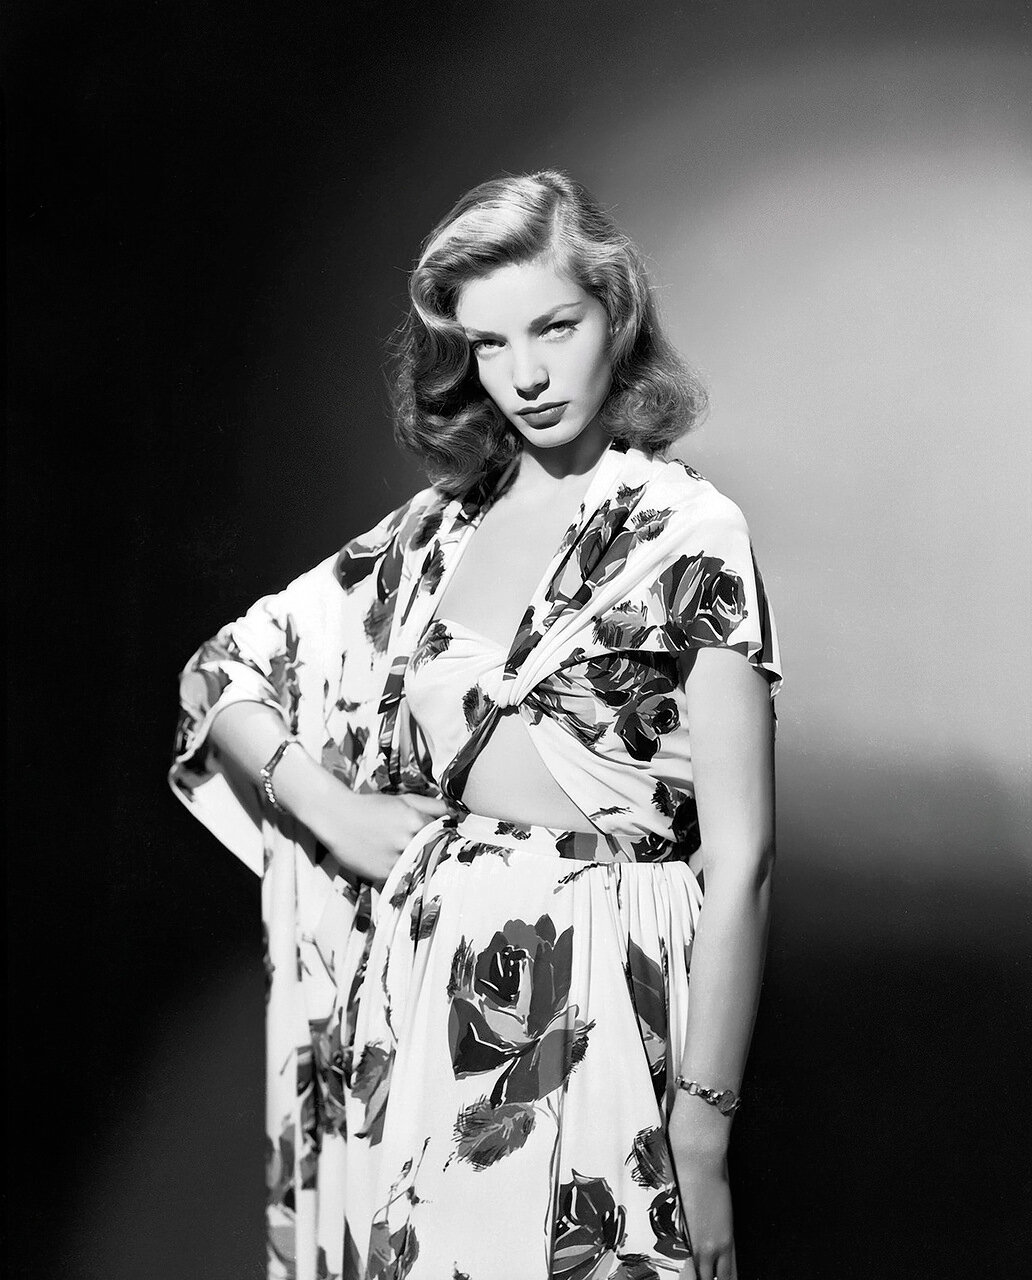 circa 1945: American screen star Lauren Bacall wearing a summer suit in a bold floral print.